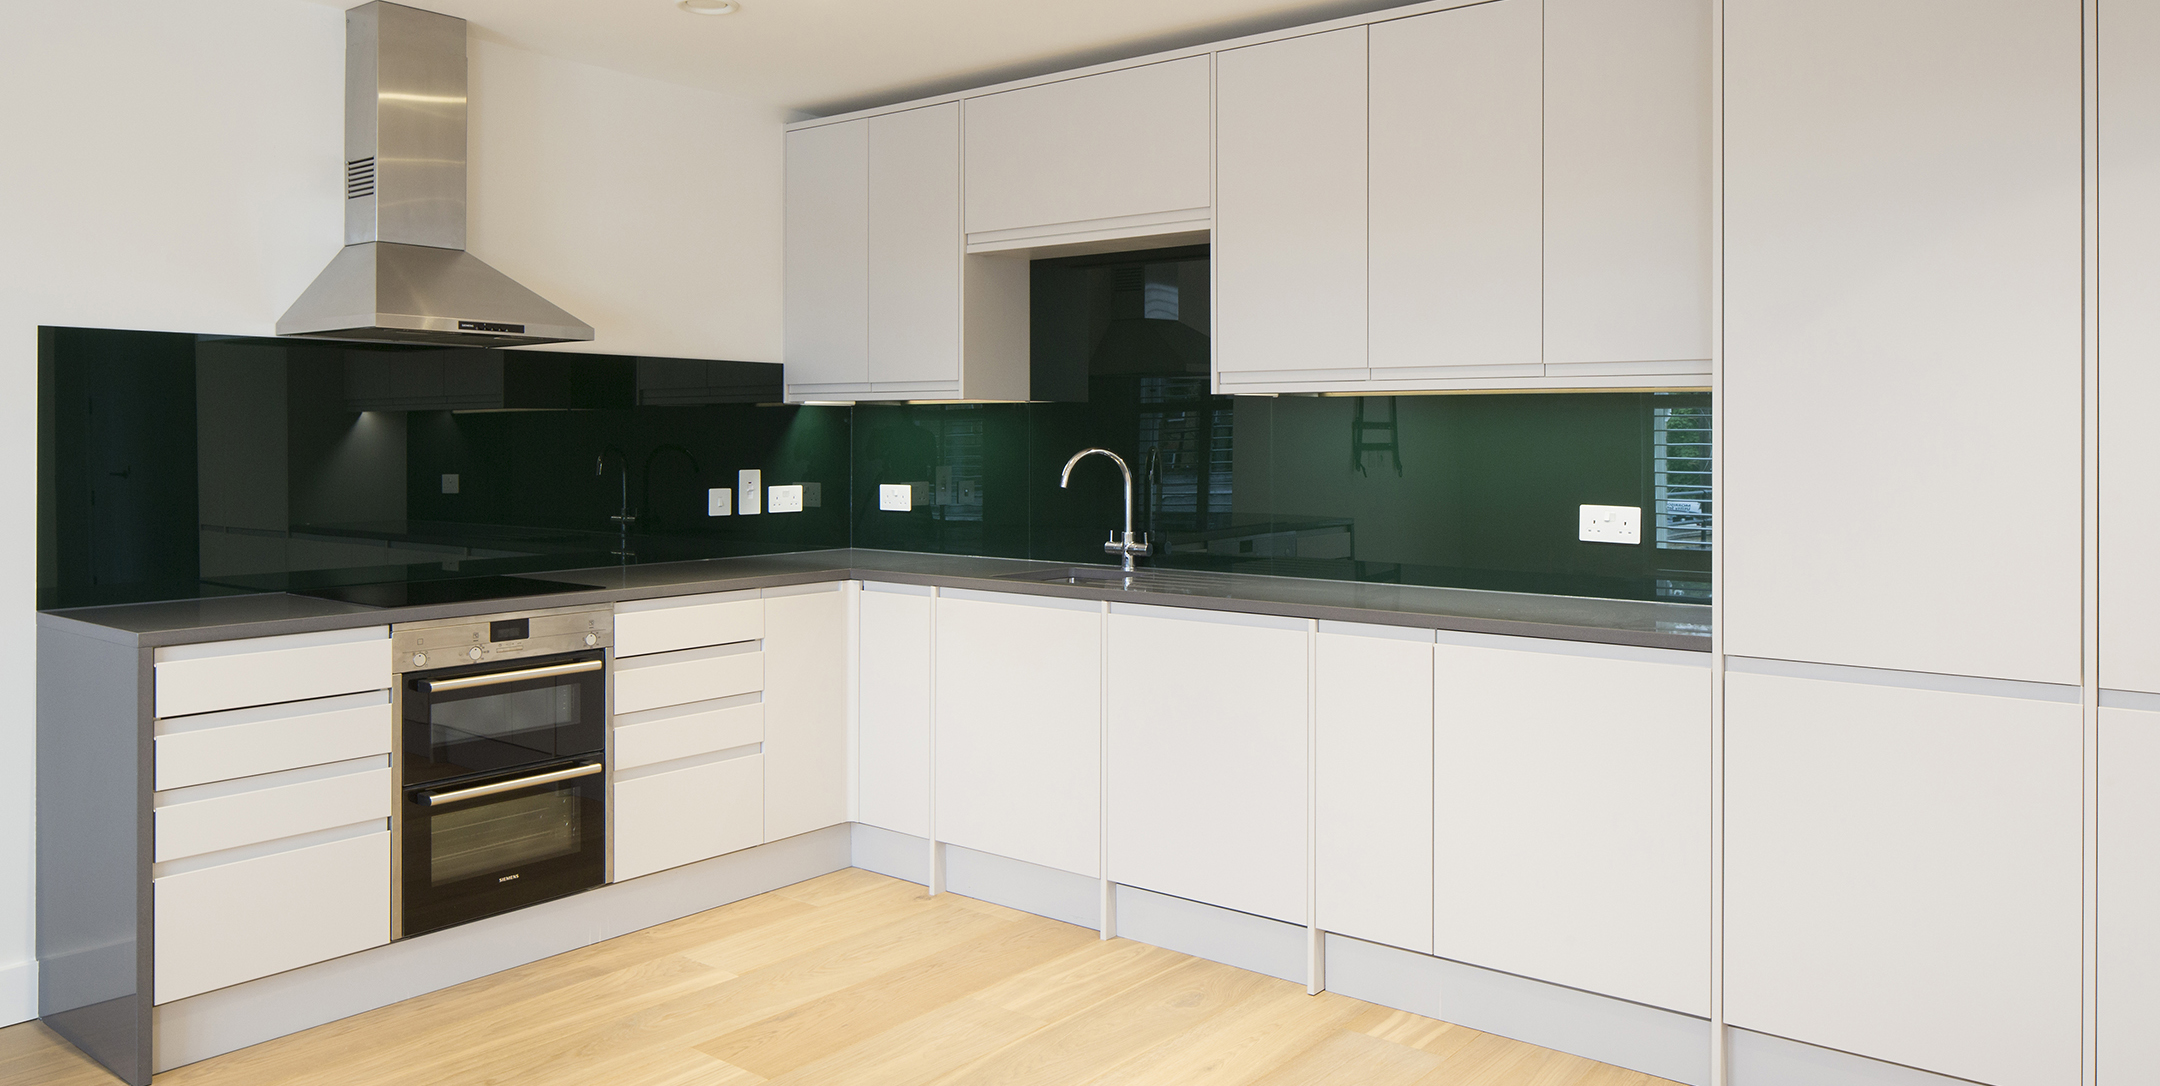 Home Refurbishments West Brompton SW10 - Ashville Inc